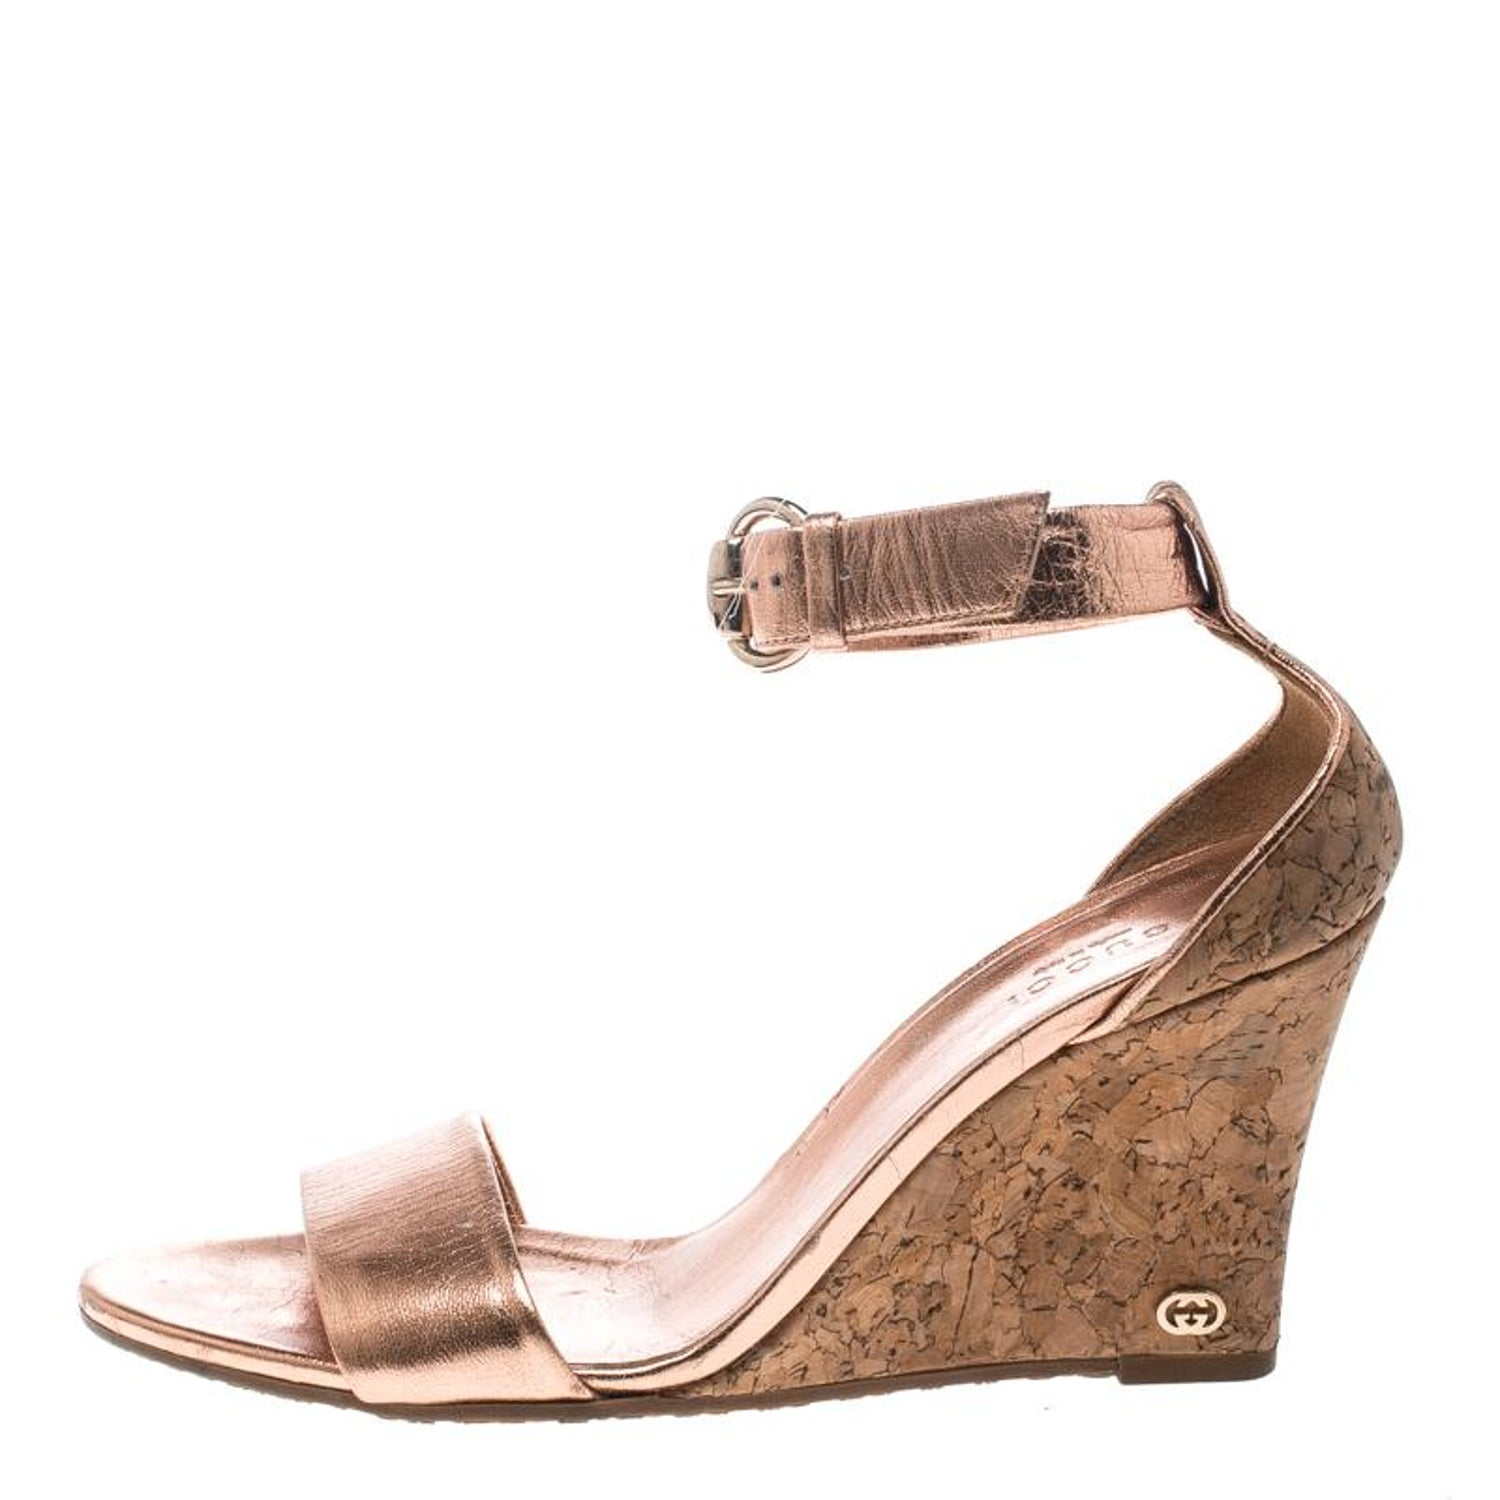 326fa1c3f756 Gucci Metallic Copper Leather Santander Ankle Strap Cork Wedge Sandals Size  37 For Sale at 1stdibs